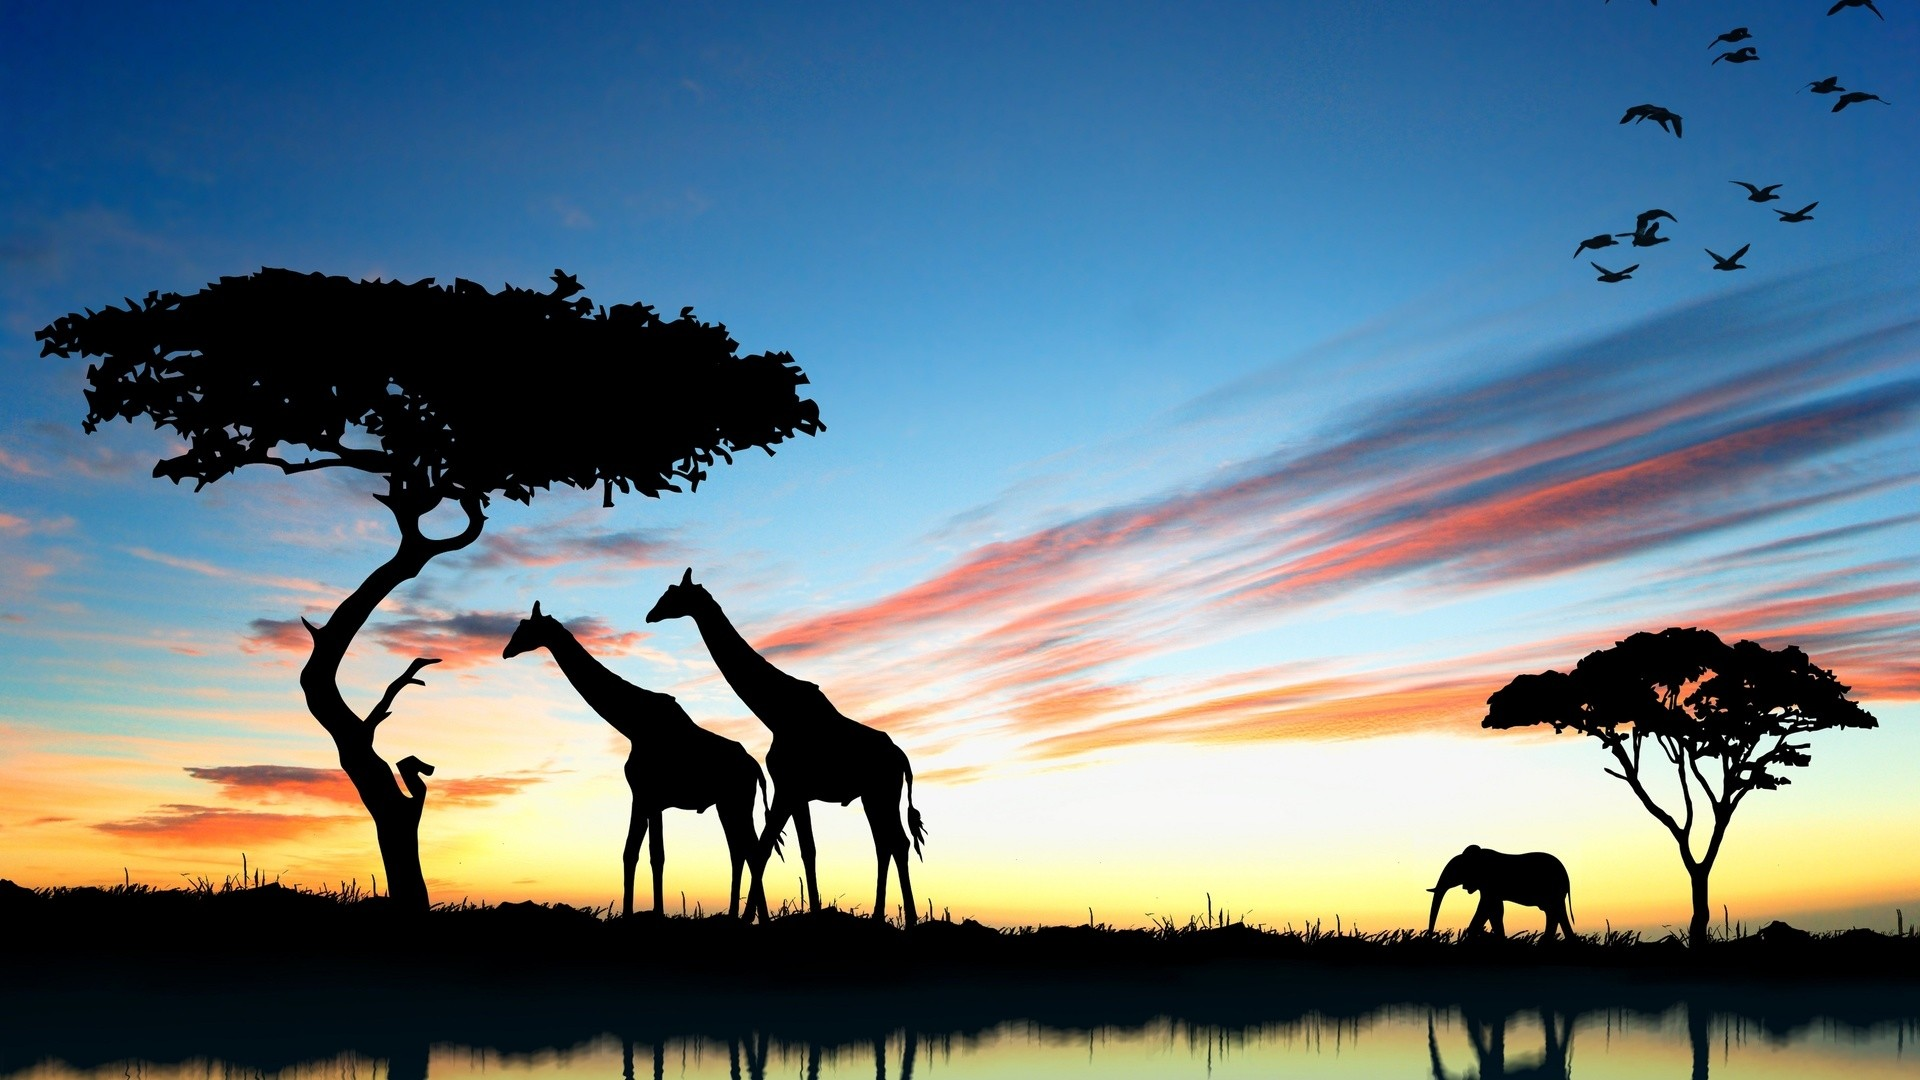 Africa Wallpaper for pc